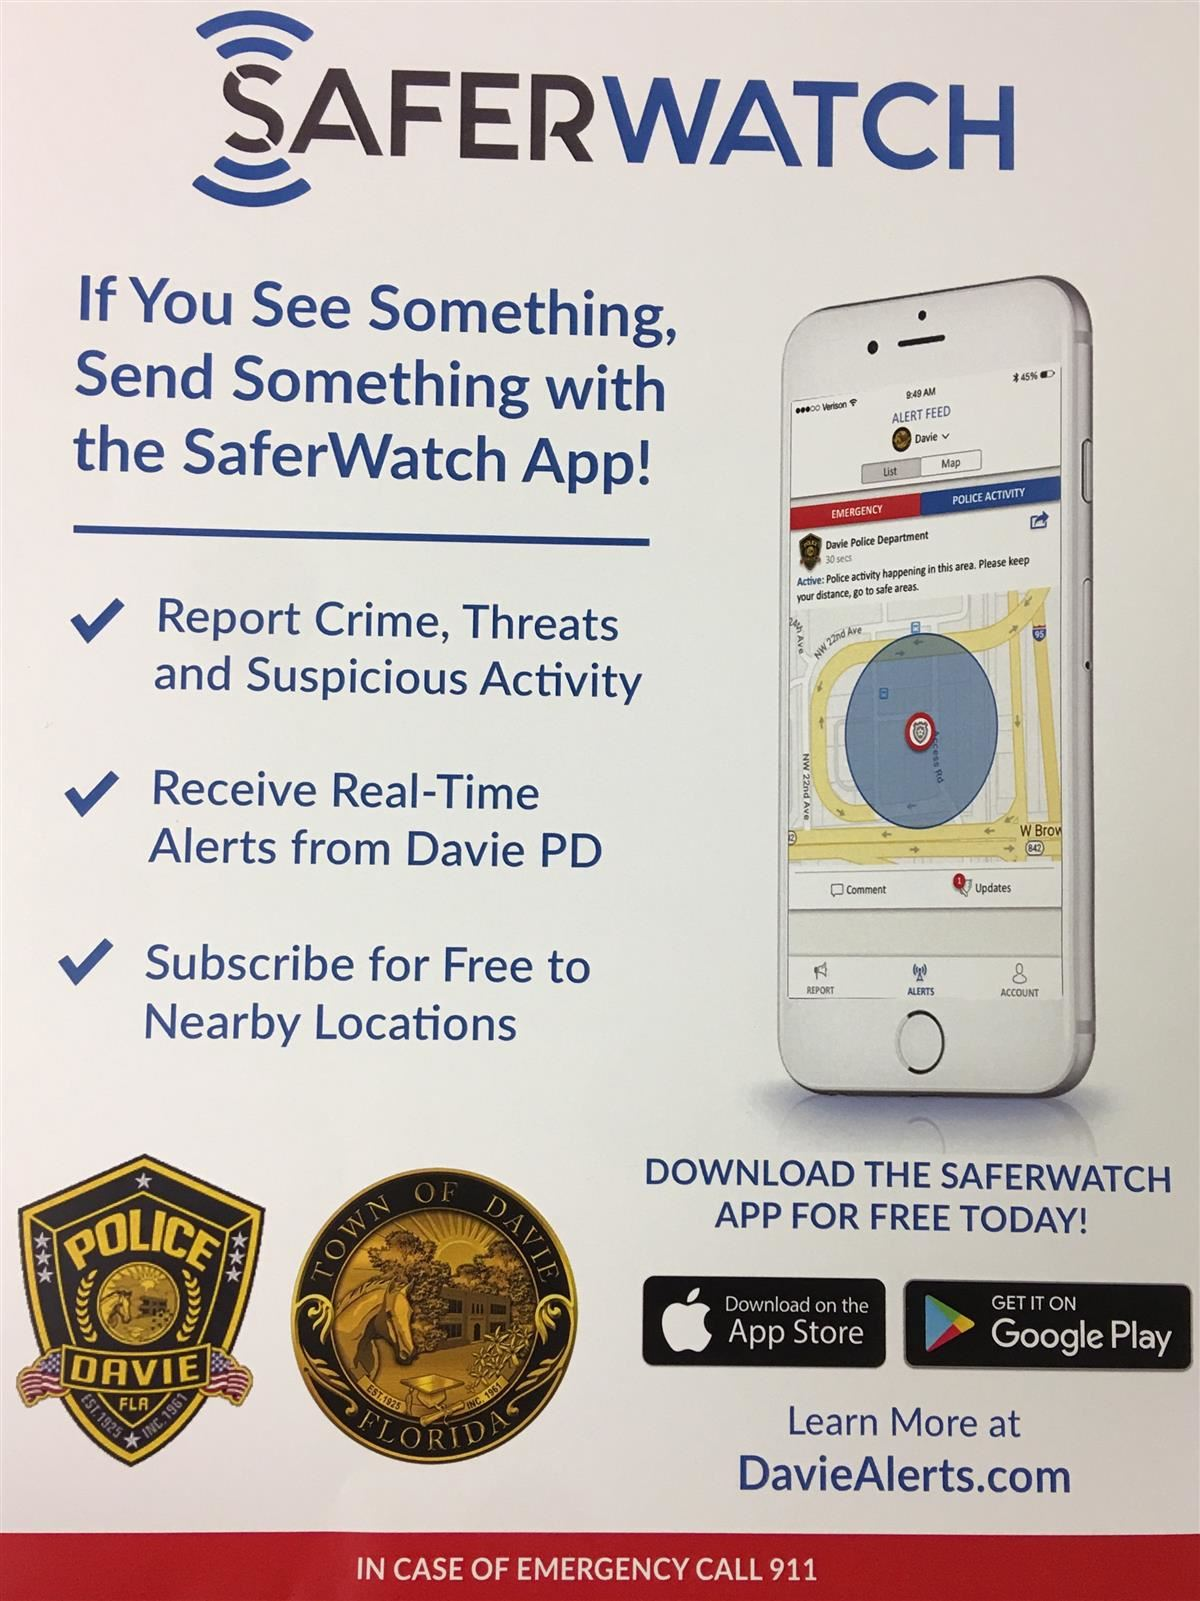 SAFERWATCH